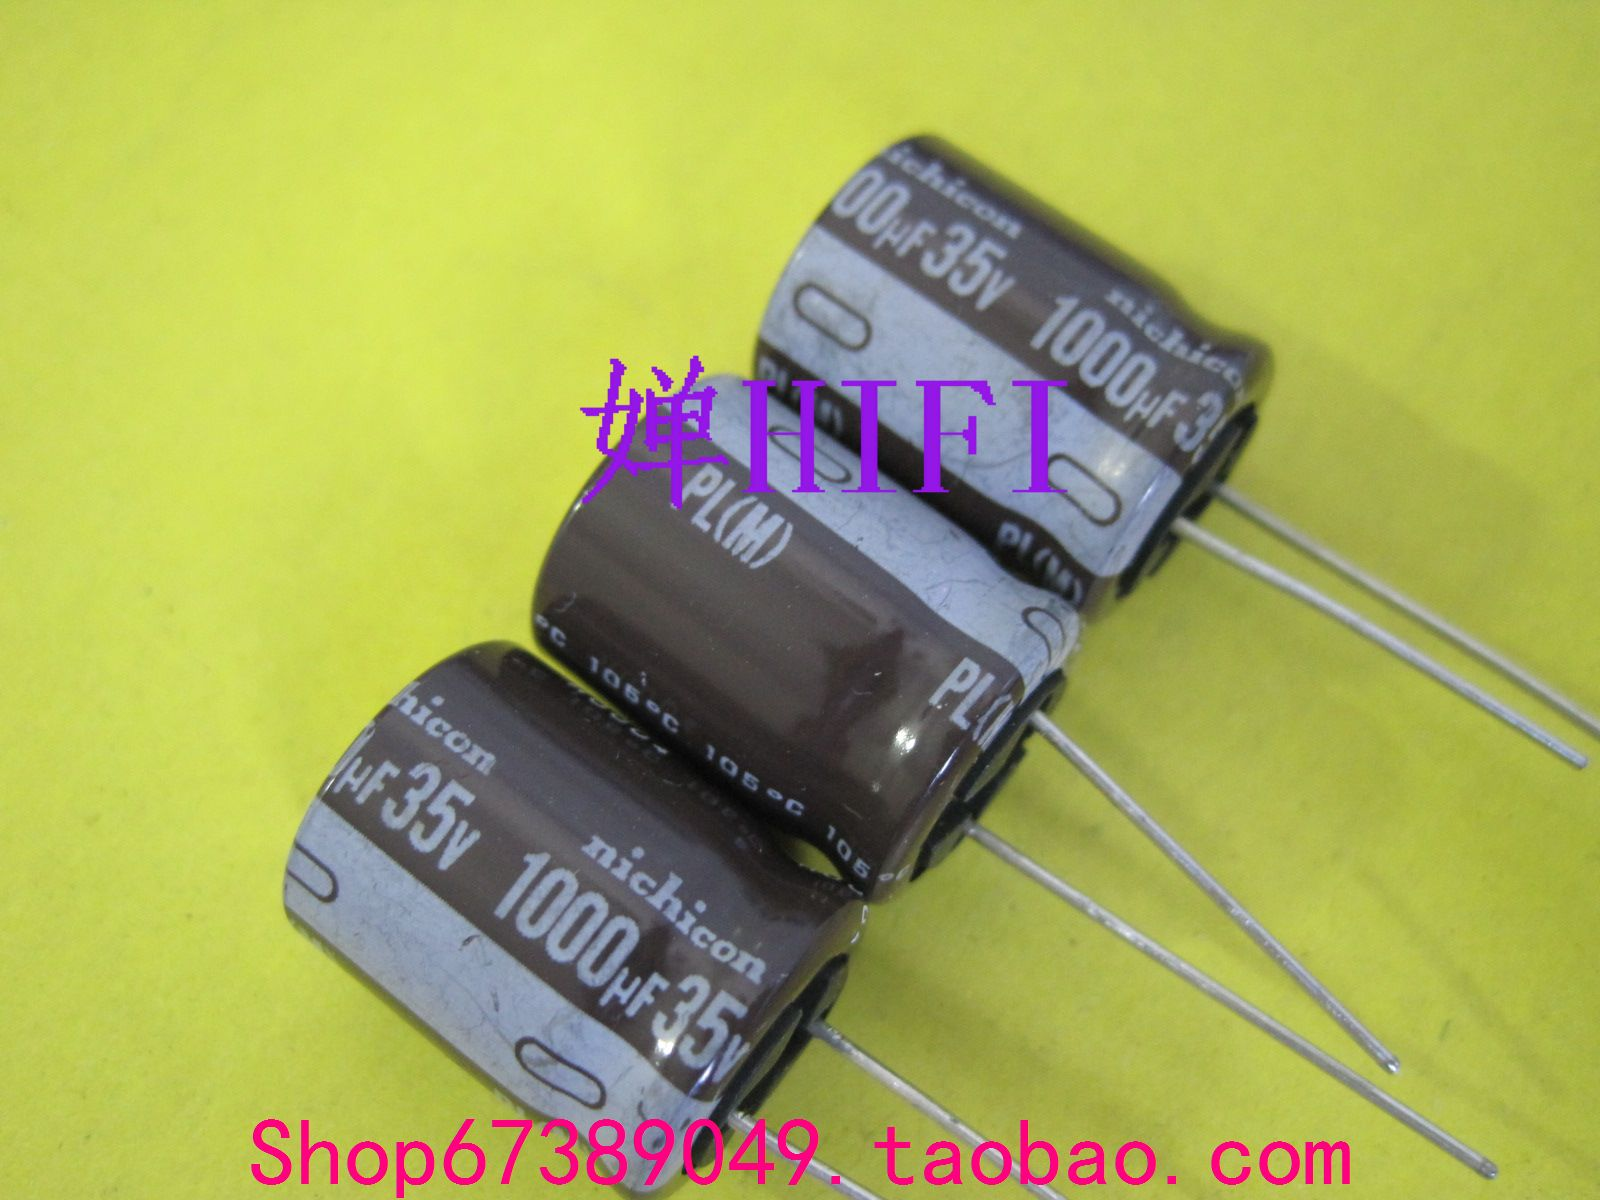 Здесь можно купить  200PCS PL nichicon authentic Japanese electrolytic capacitors 35v1000uf 16x20  free shipping  Электронные компоненты и материалы